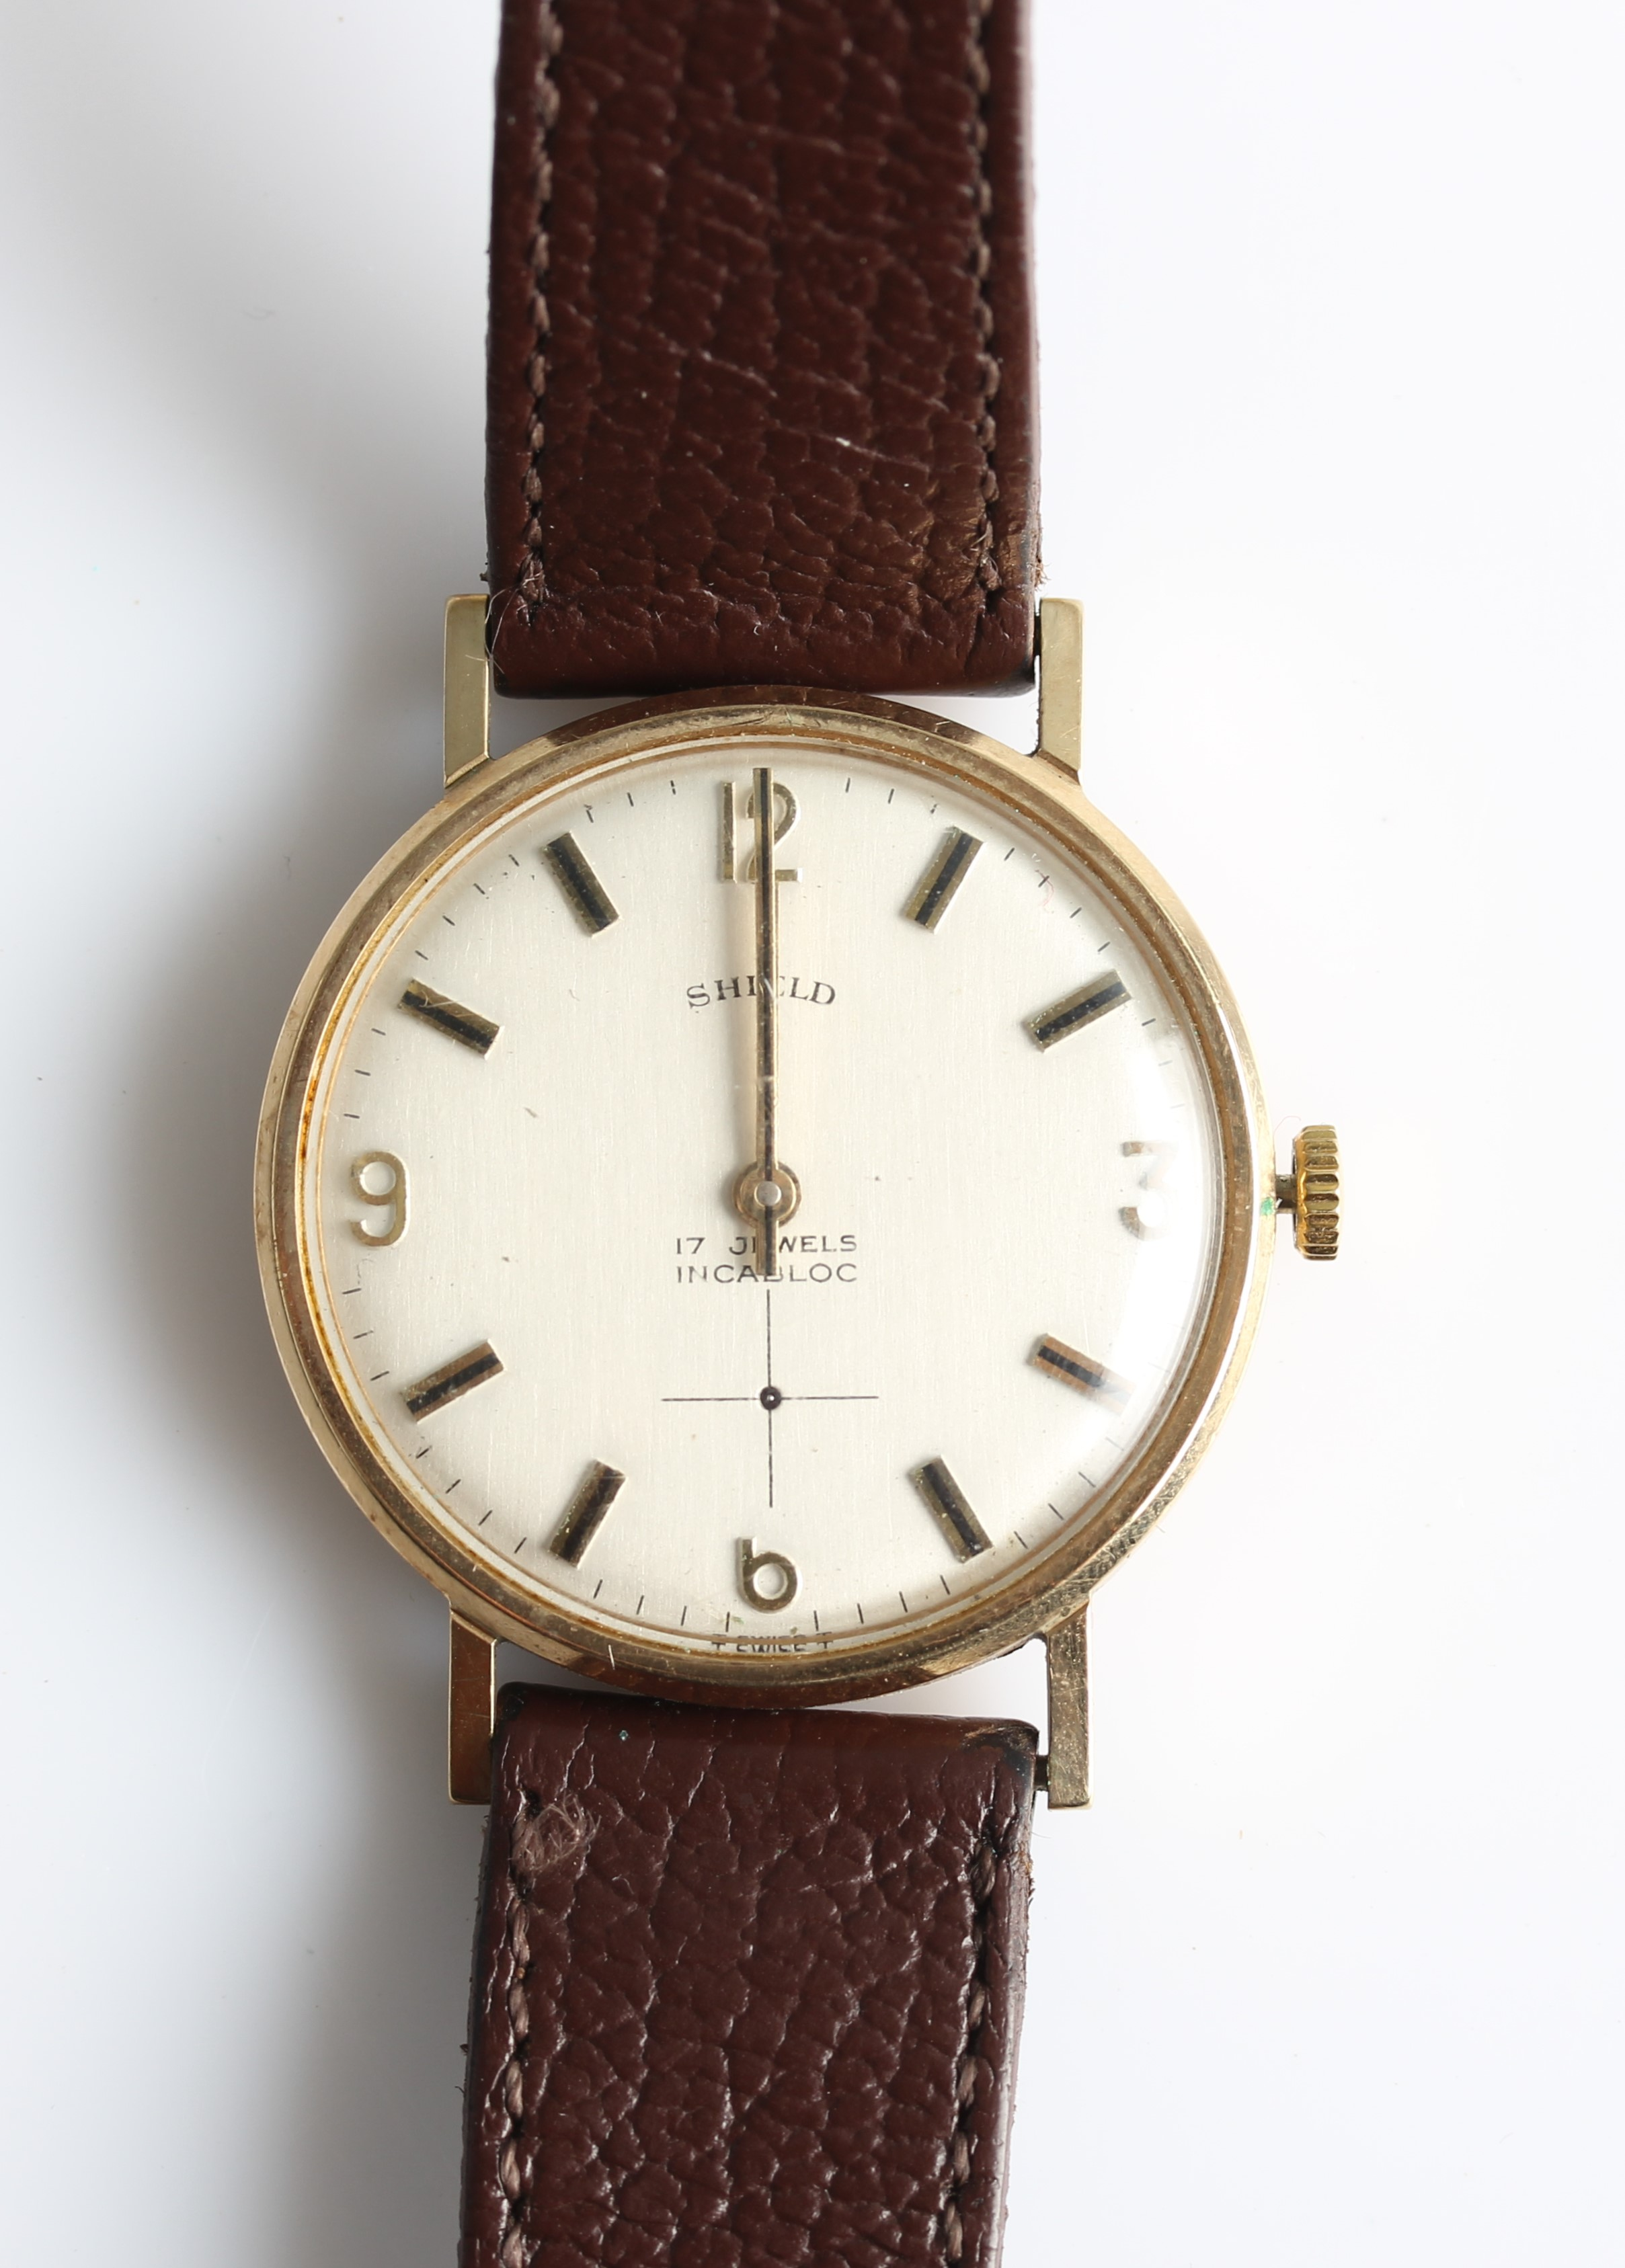 Lot 30 - A 9ct yellow gold gents Shield wrist watch, the silver-tone dial having hourly baton markers and